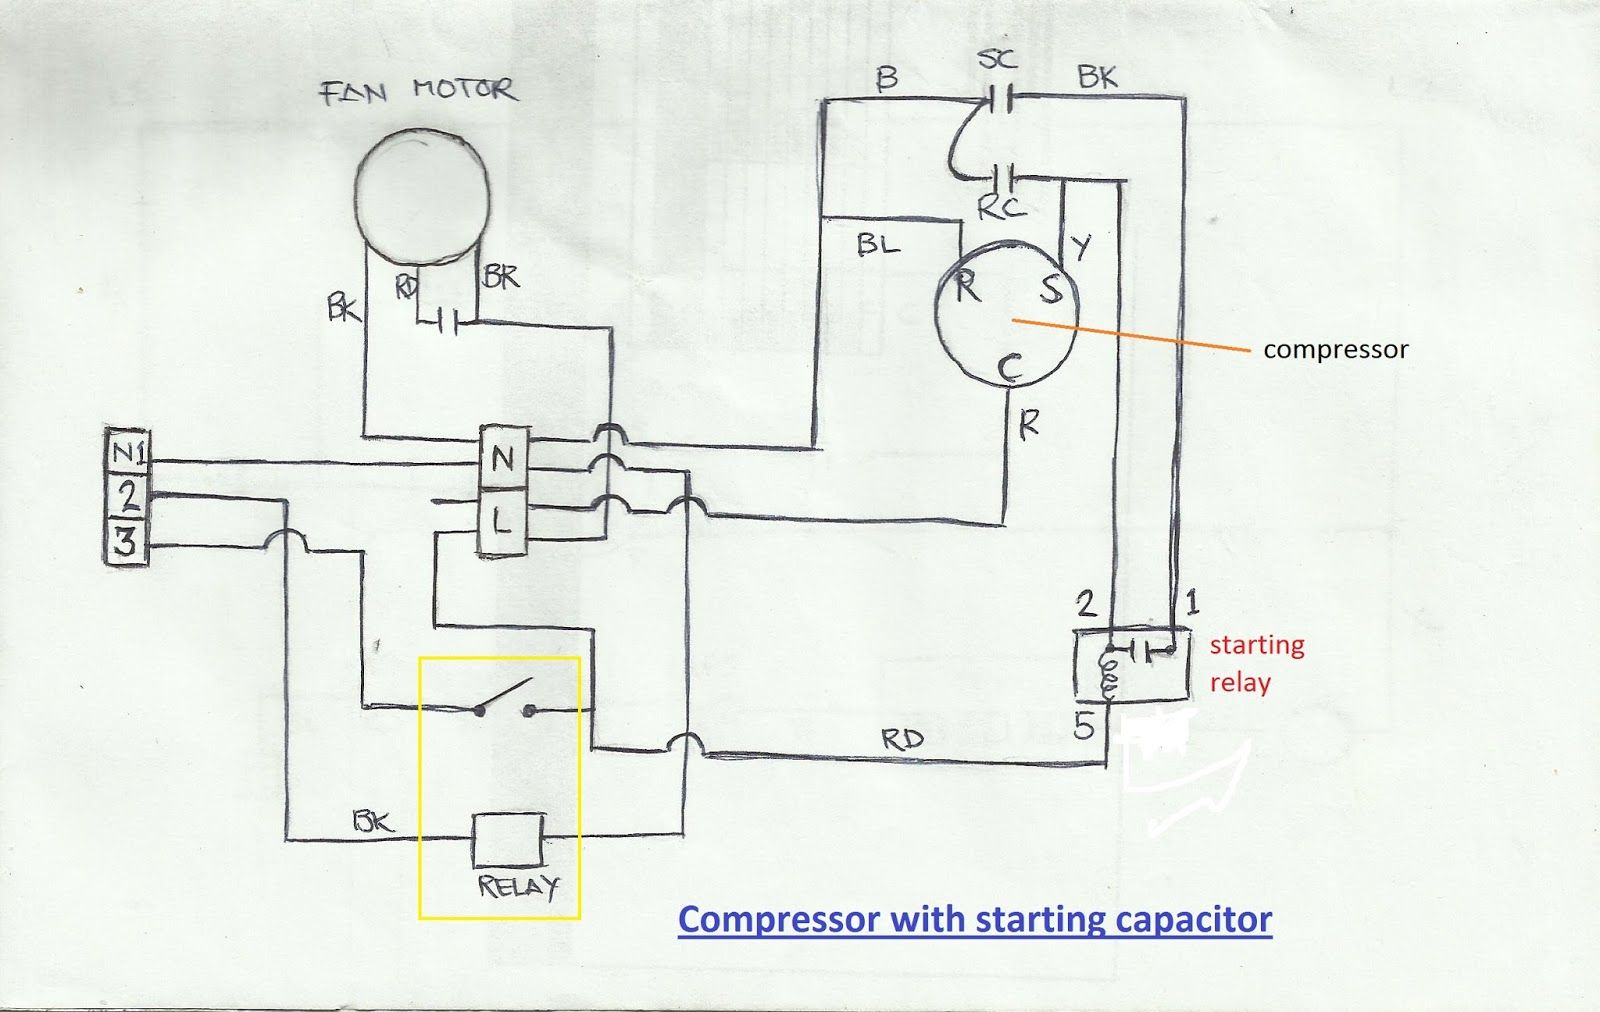 hight resolution of refrigeration and air conditioning repair wiring diagram of at fridge compressor ac capacitor air conditioner